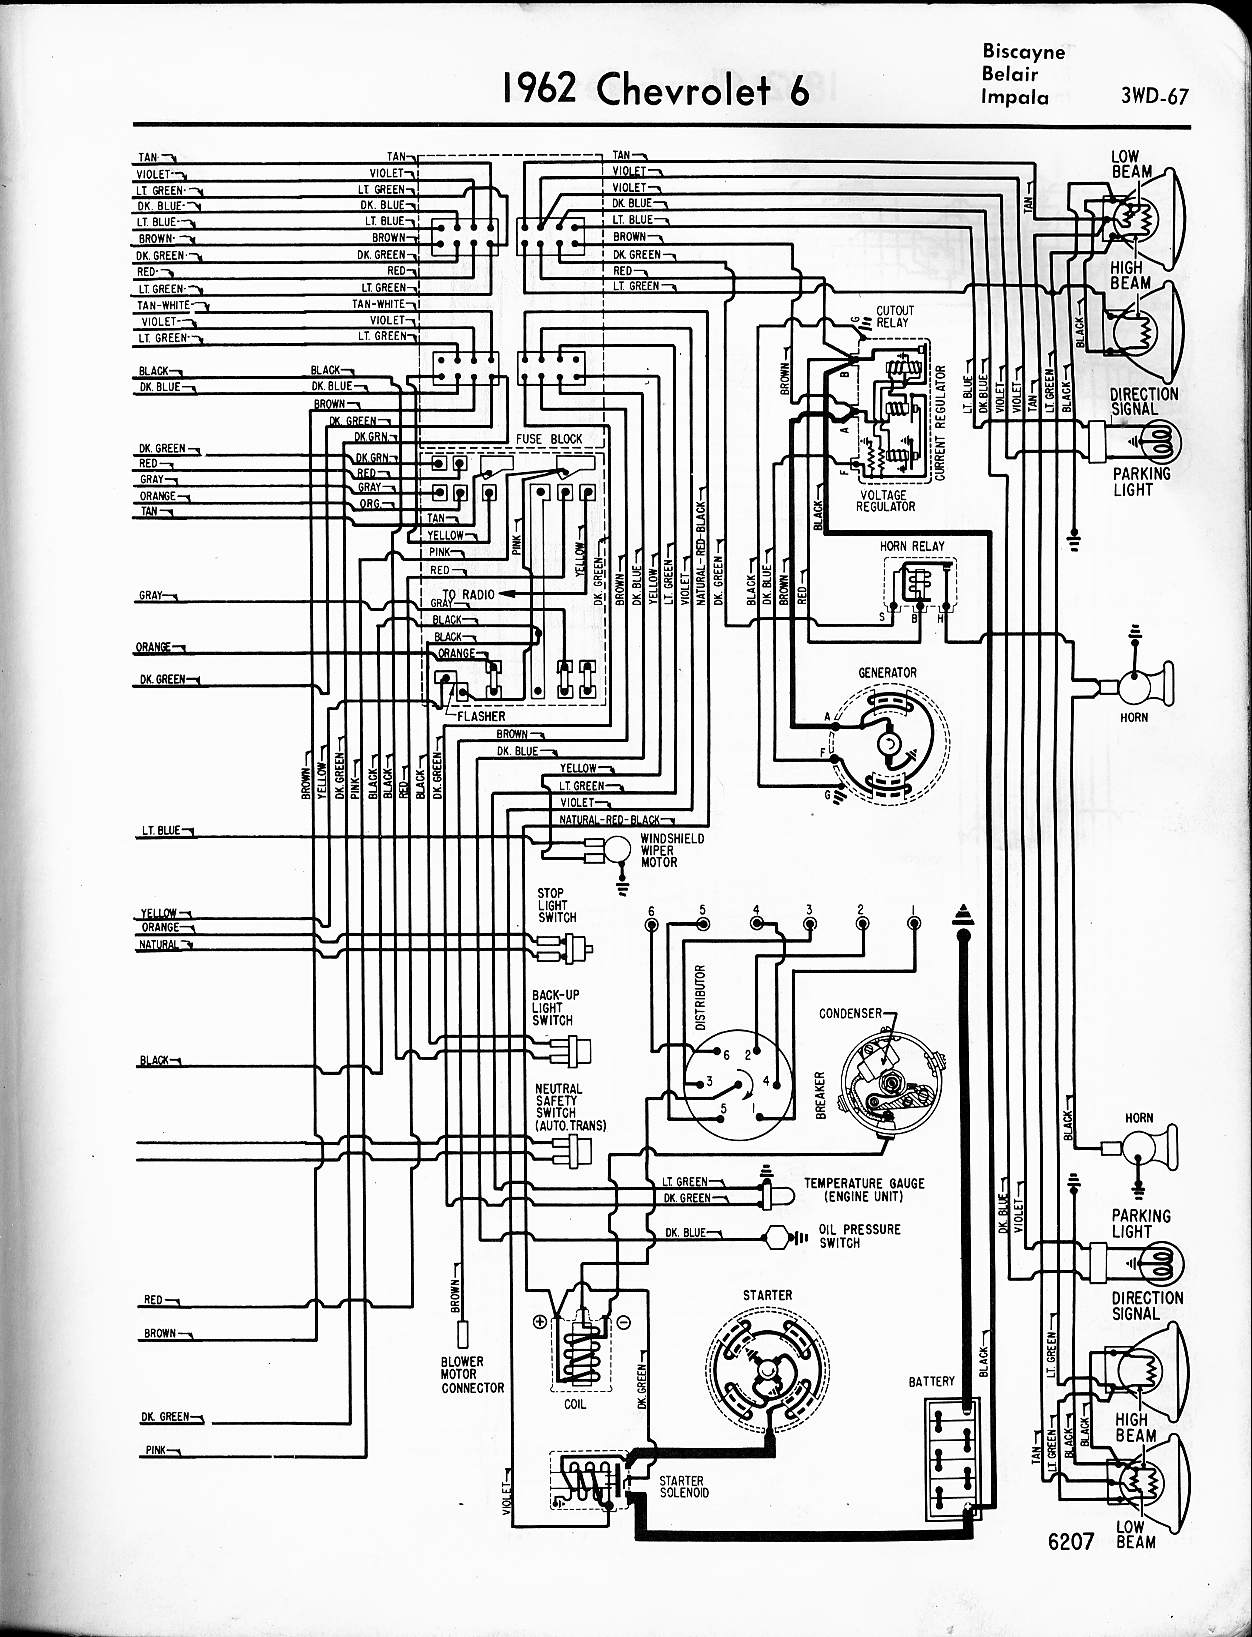 62 Chevy Impala Wiring Diagram Simple Schematics 57 65 Diagrams 1962 Truck 6 Cyl Biscayne Belair